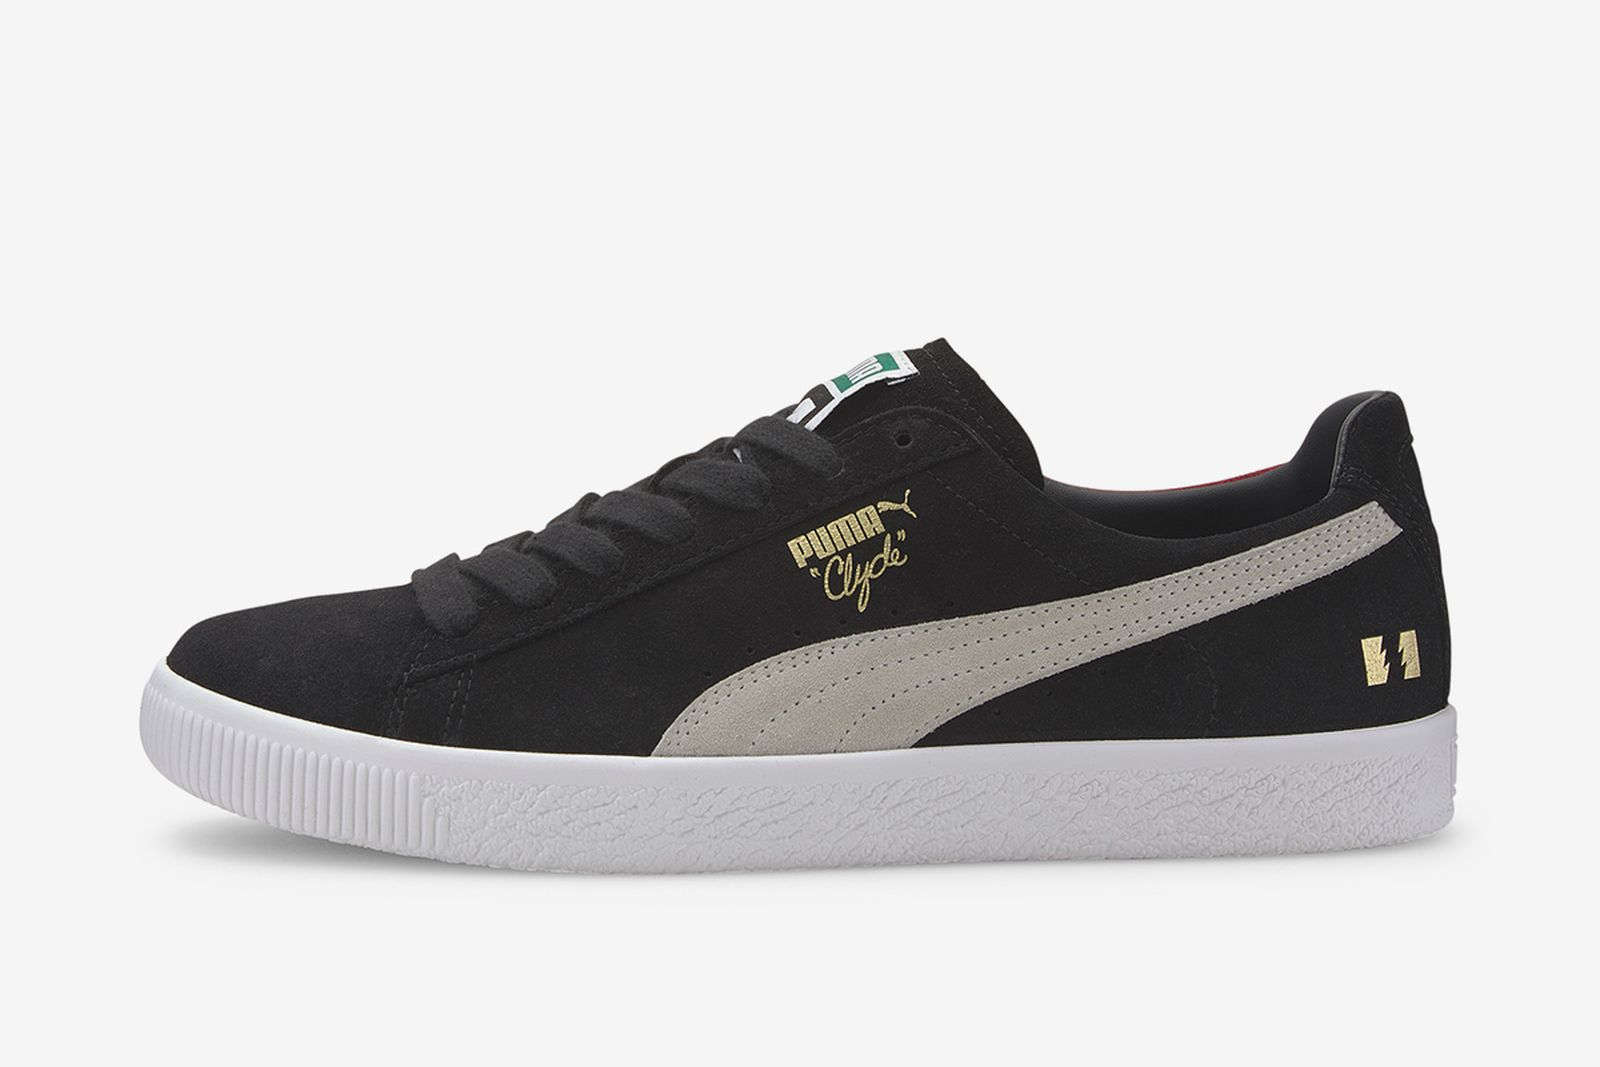 hundreds-puma-ss20-collection-release-date-price-01